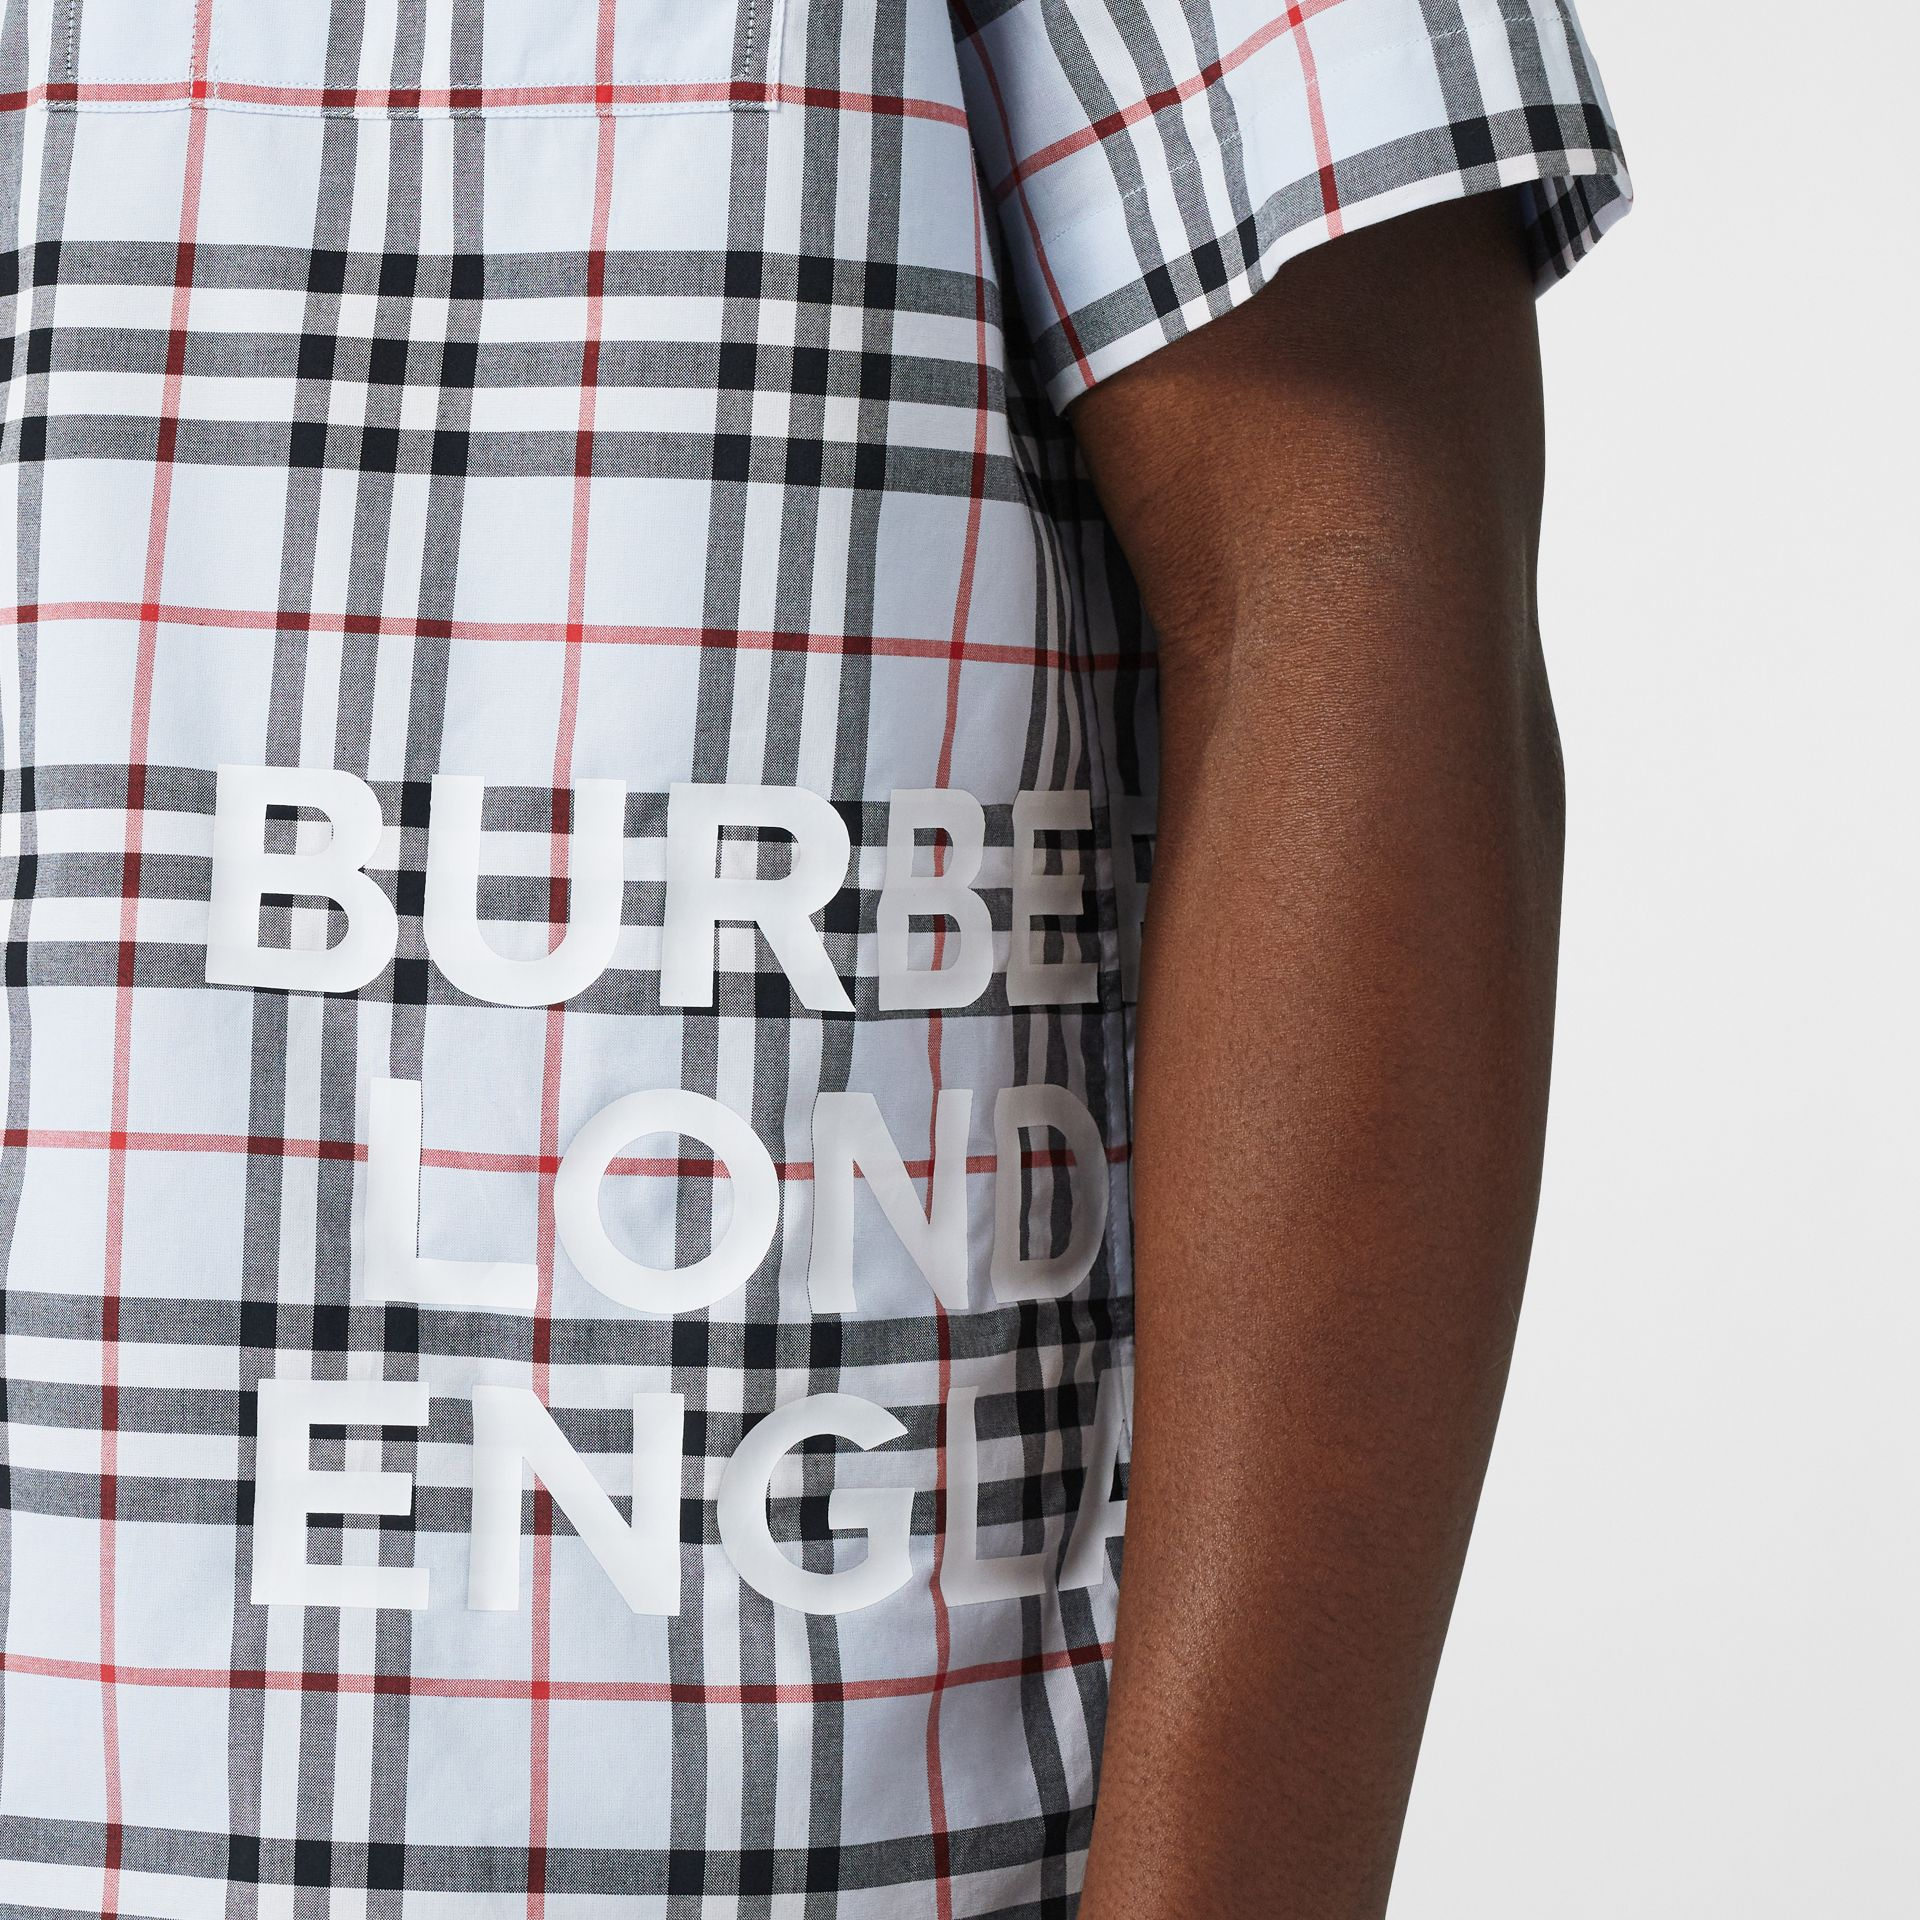 Short-sleeve Vintage Check Cotton Oversized Shirt in Pale Blue - Men | Burberry - gallery image 1